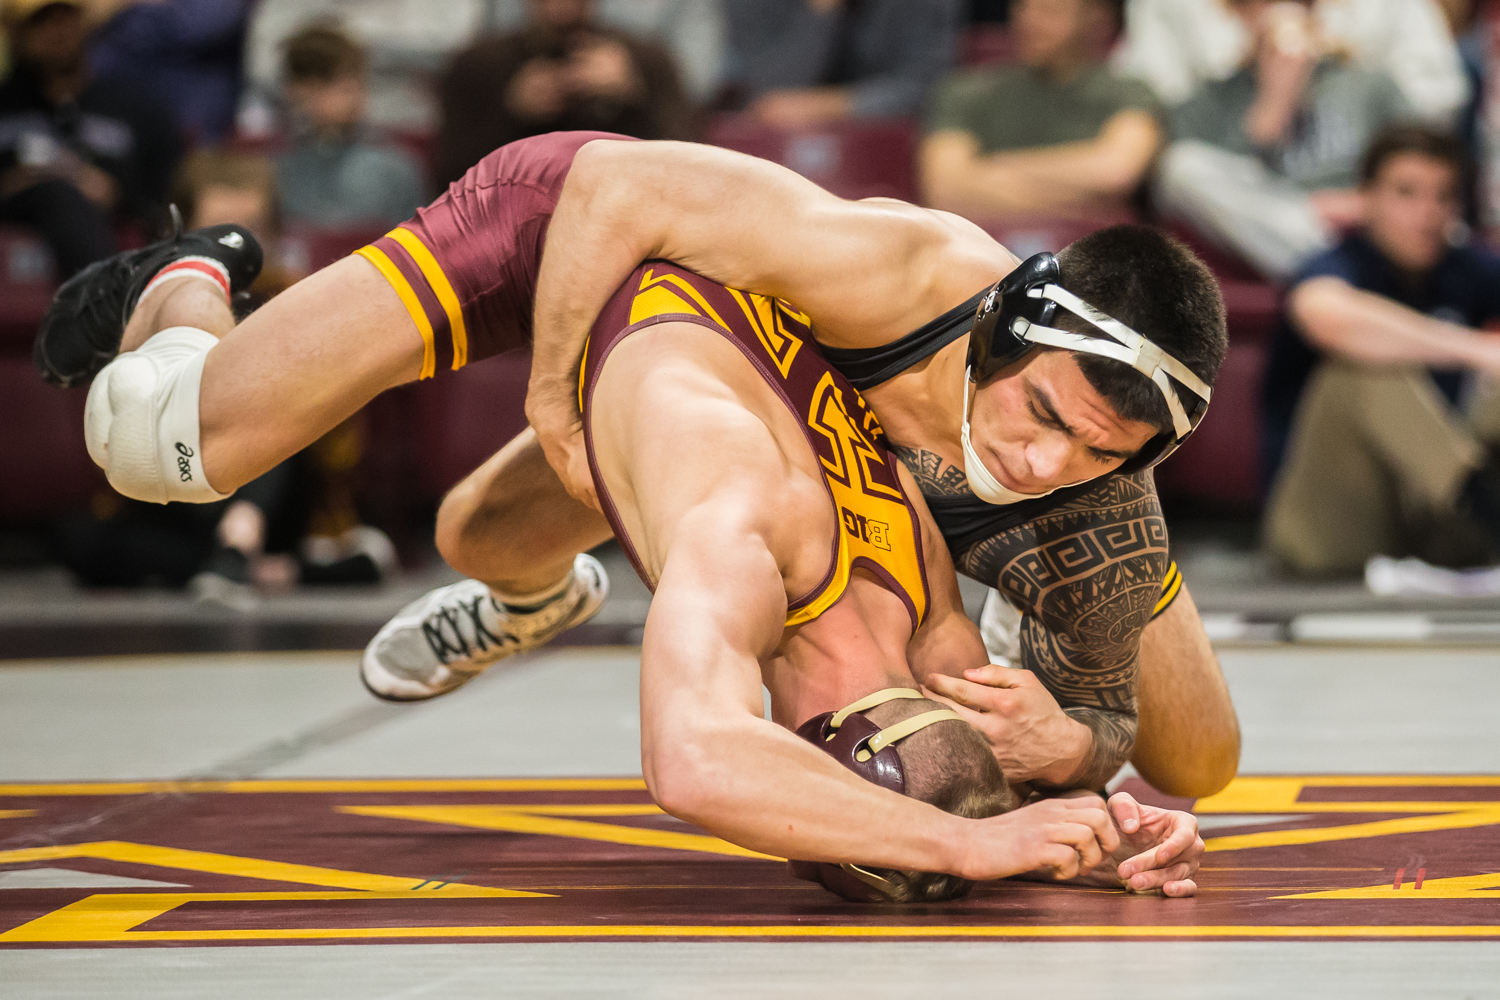 Iowa's 149-lb Pat Lugo wrestles Minnesota's Thomas Thorn during the third session of the 2019 Big Ten Wrestling Championships in Minneapolis, MN on Sunday, March 10, 2019. Lugo won by decision, 6-4.